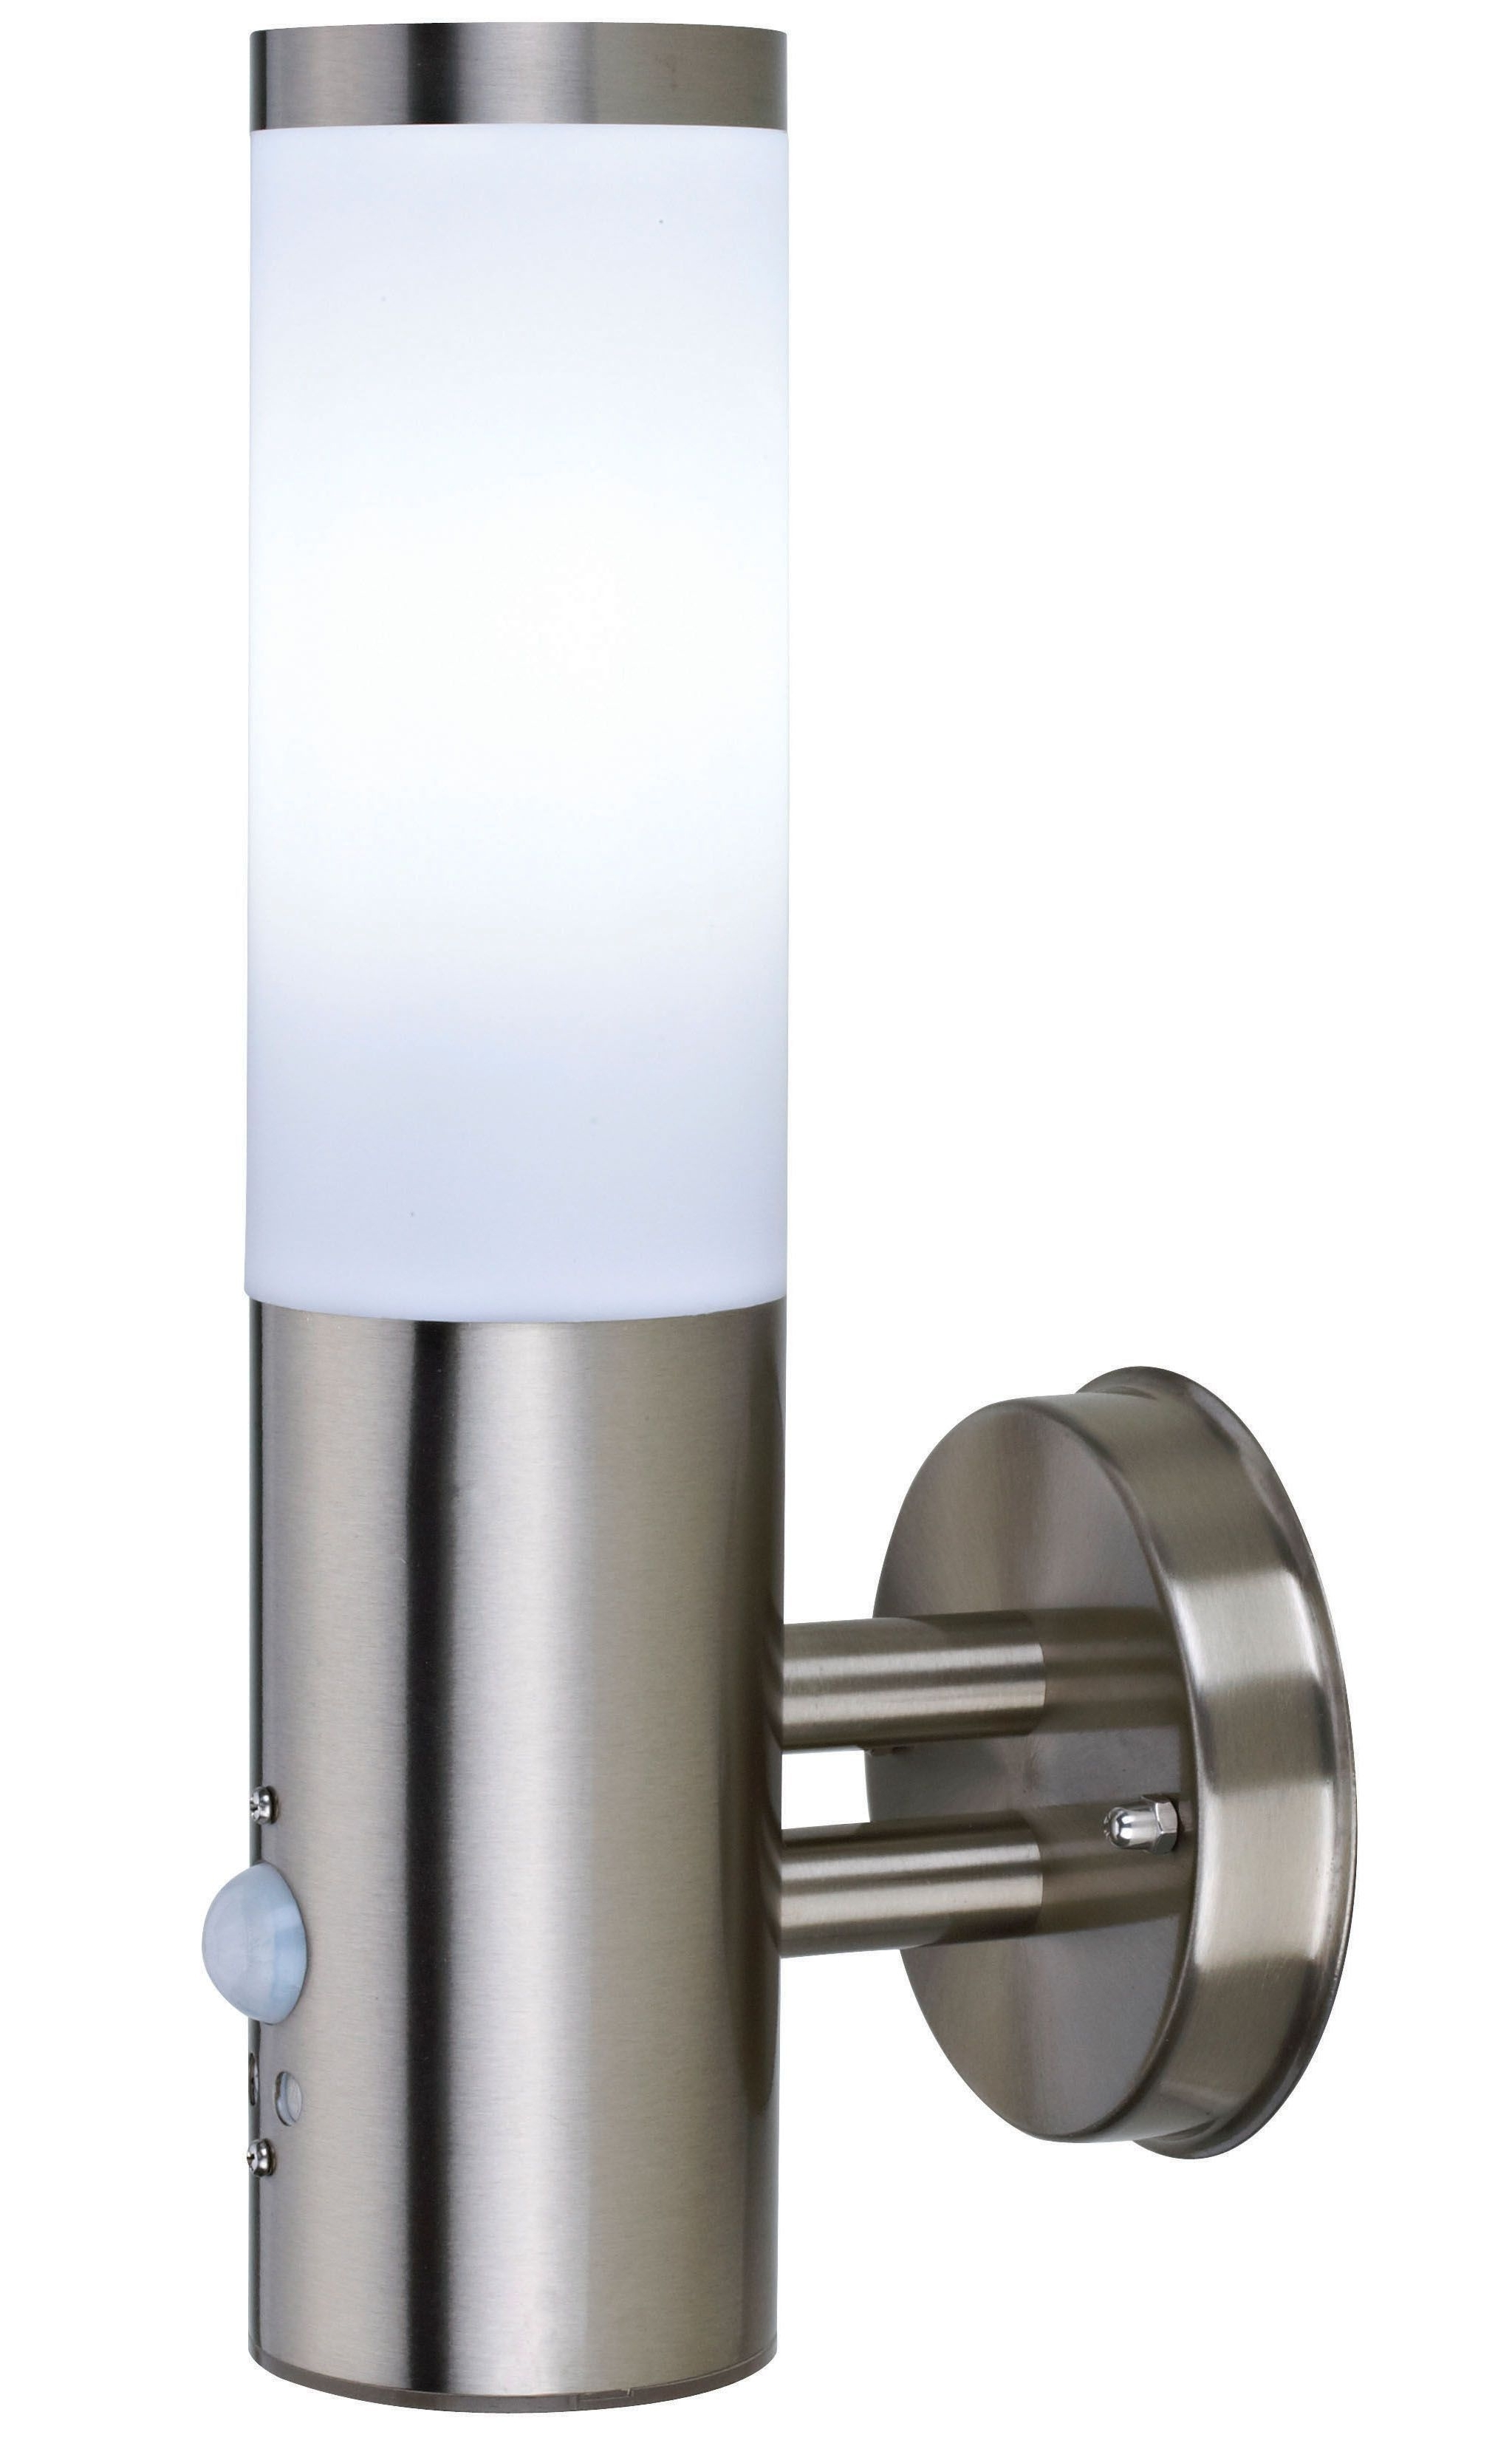 Newest Blooma Nomos Stainless Steel 6W Mains Powered External Pir Wall Throughout Outdoor Pir Lanterns (View 11 of 20)